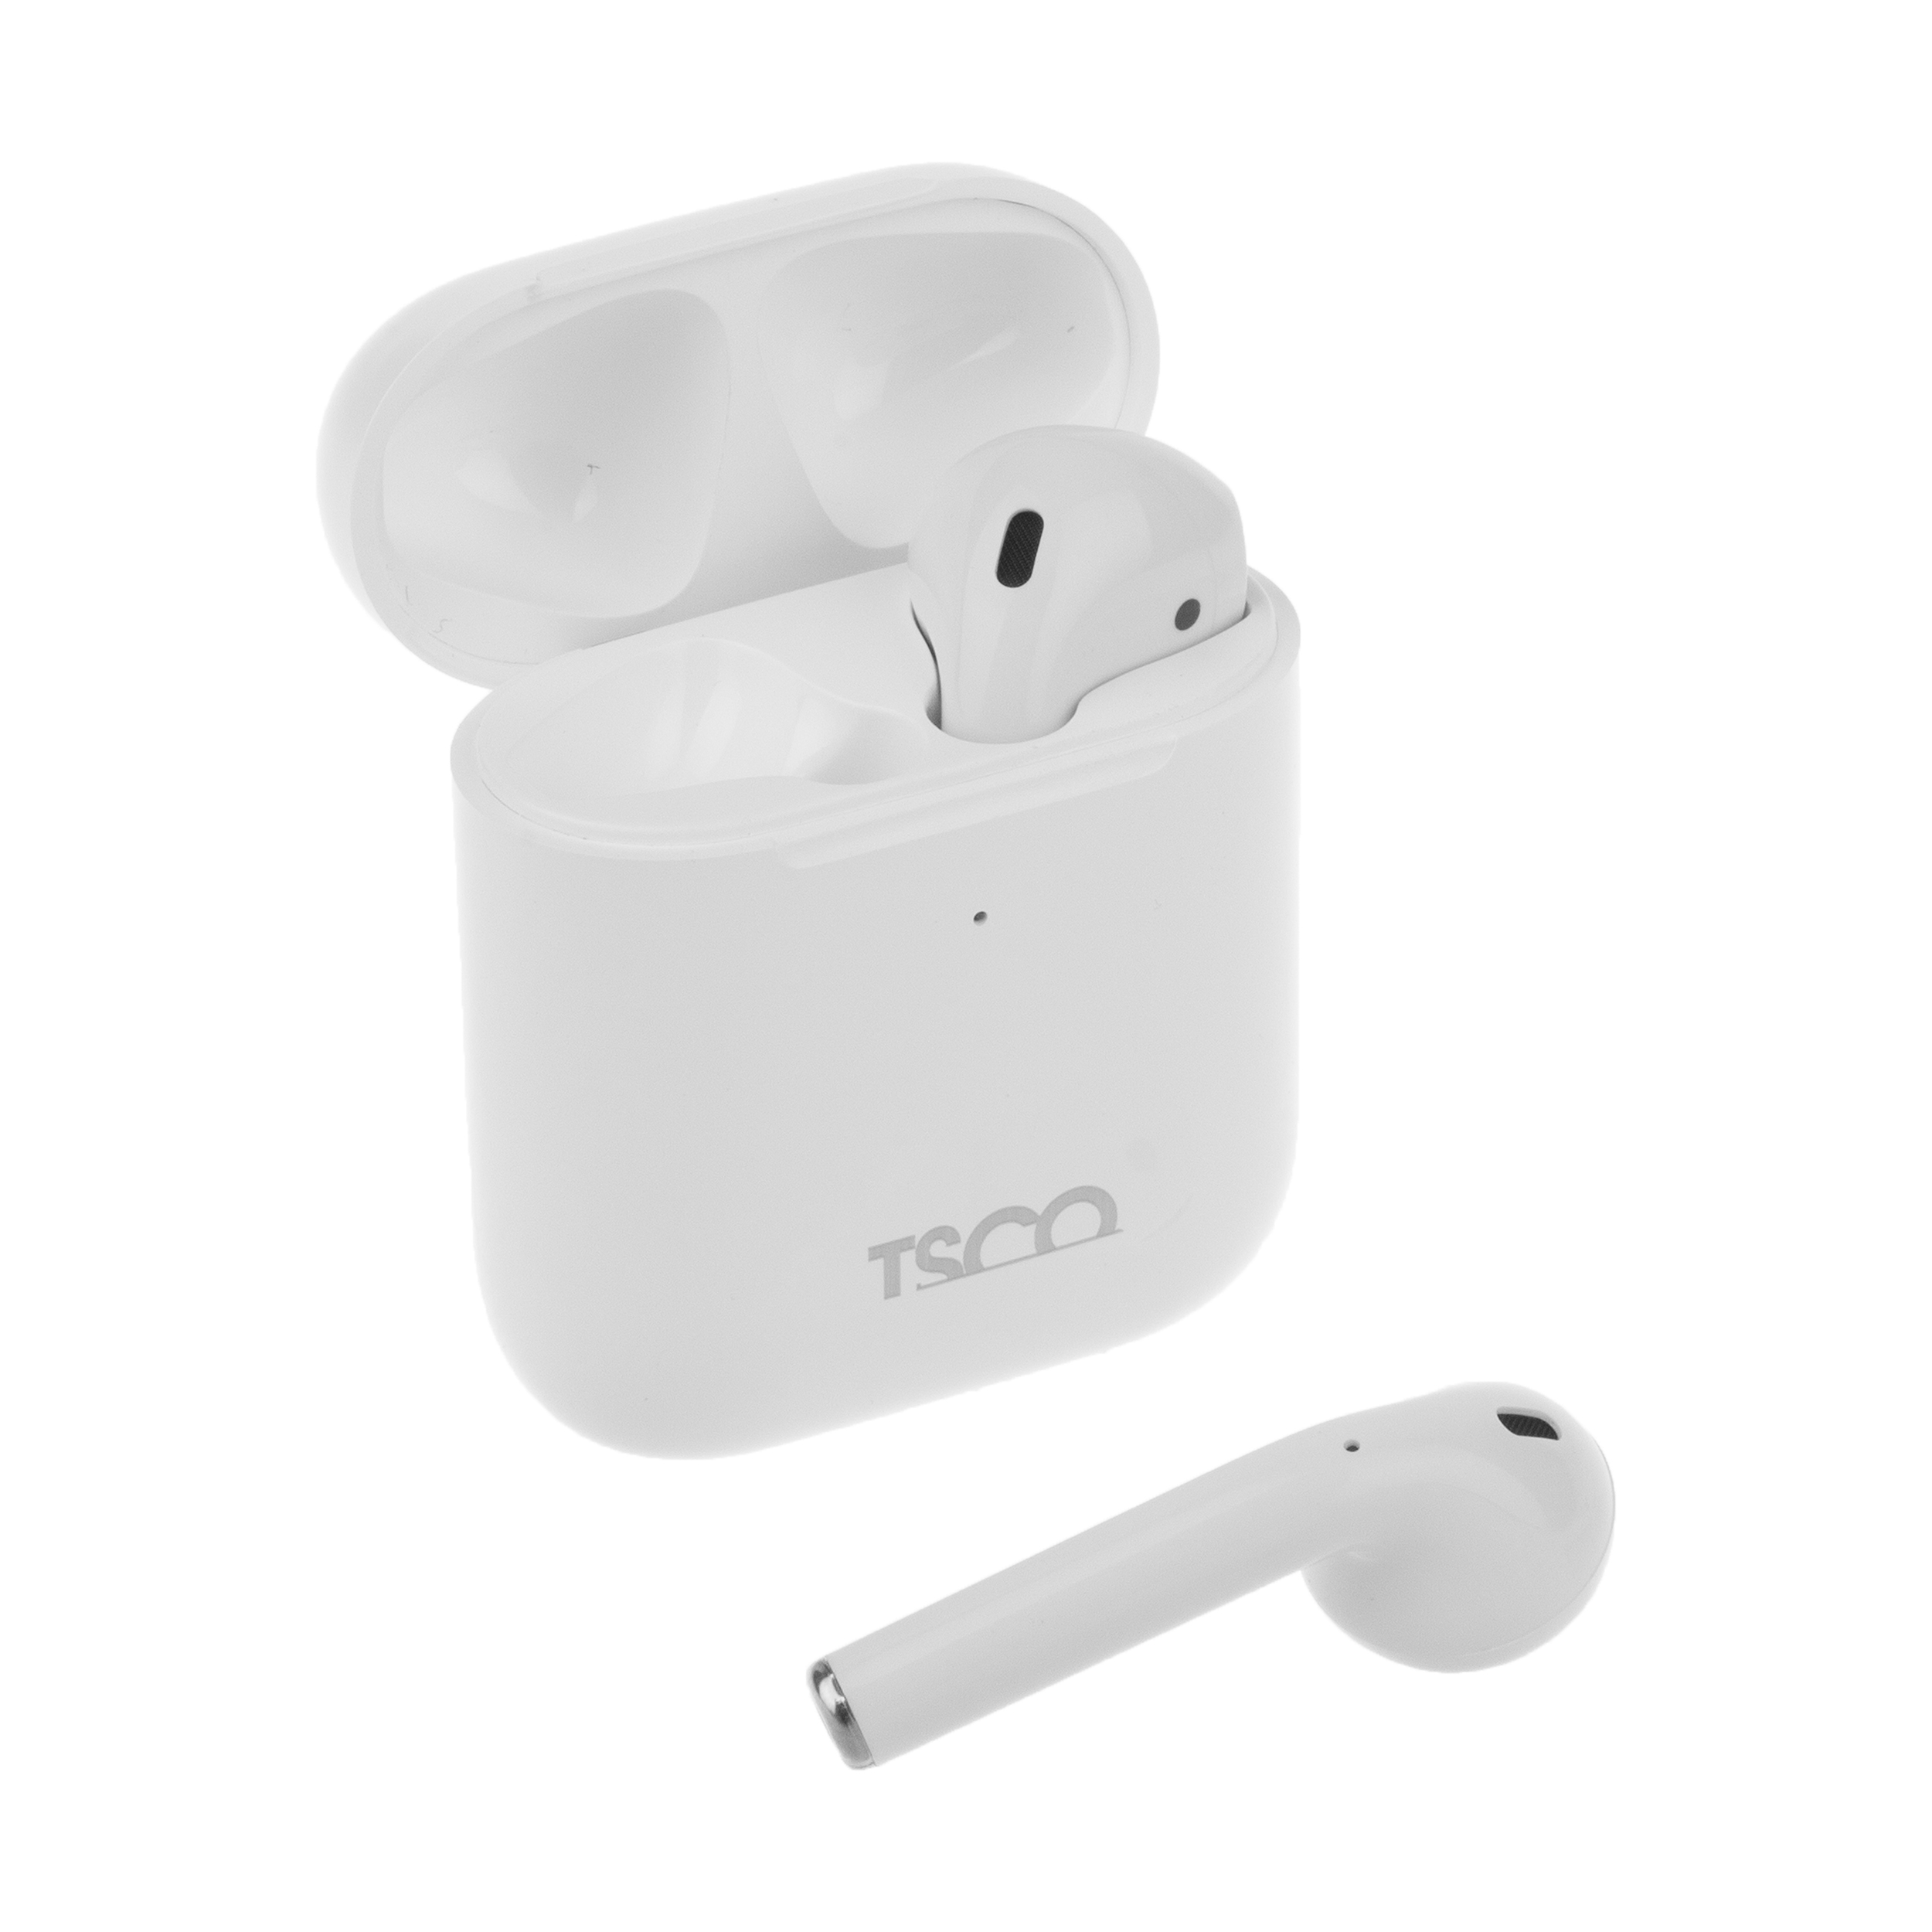 TSCO TH 5353 Bluetooth Headset